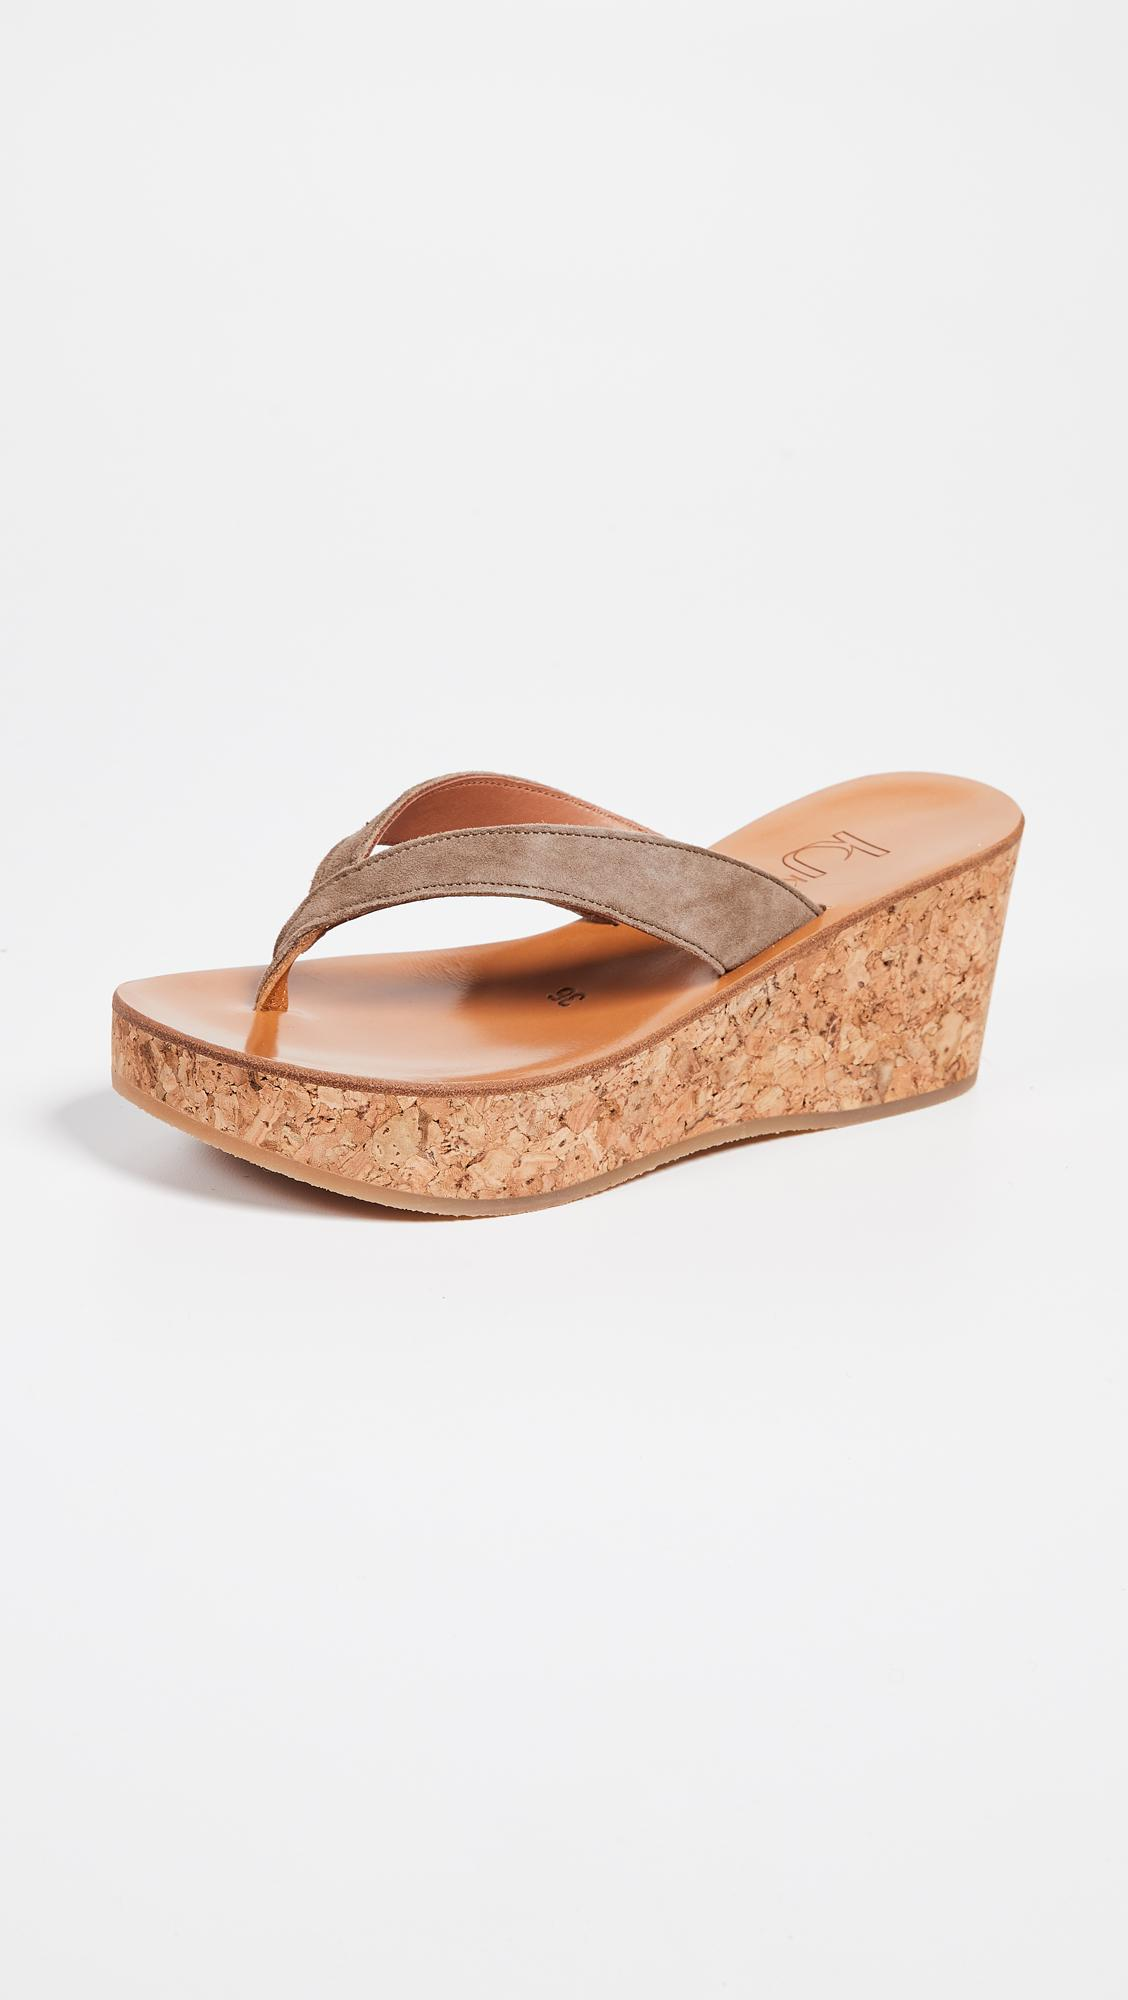 ccf7b41c5fd8 K. Jacques Diorite Thong Wedges - Save 3% - Lyst